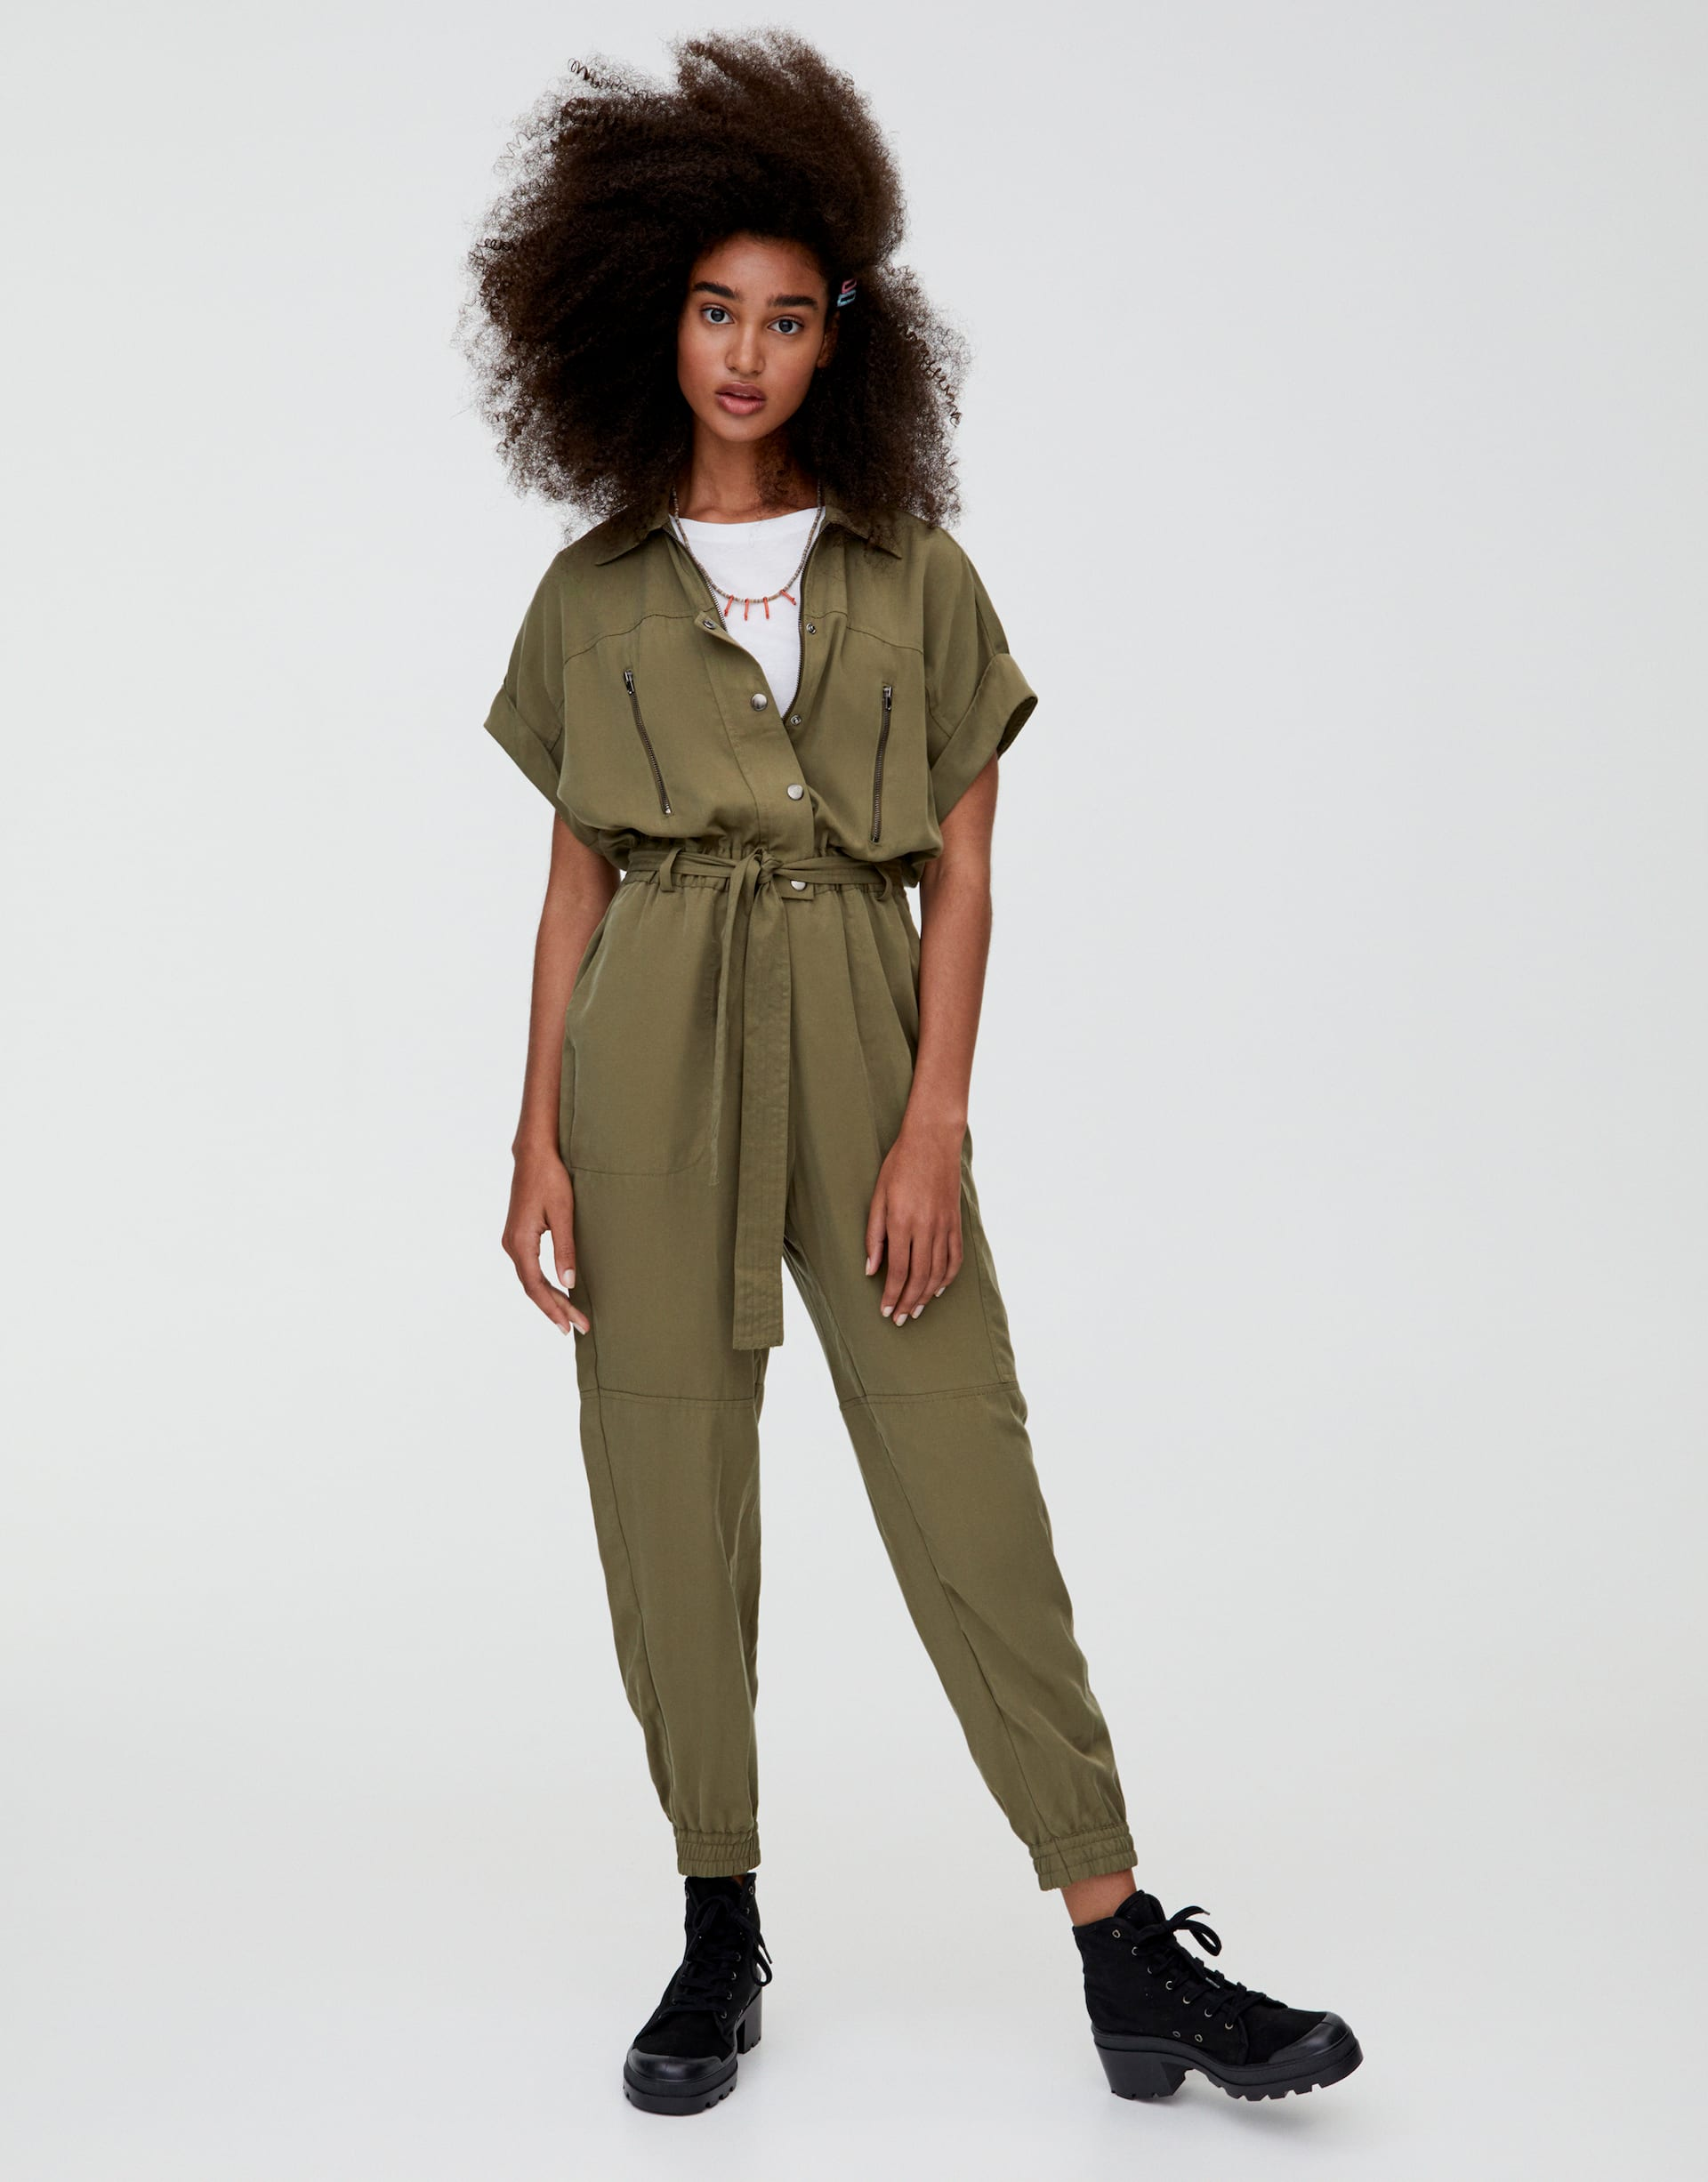 compare price distinctive design best quality for Utility jumpsuit with pockets